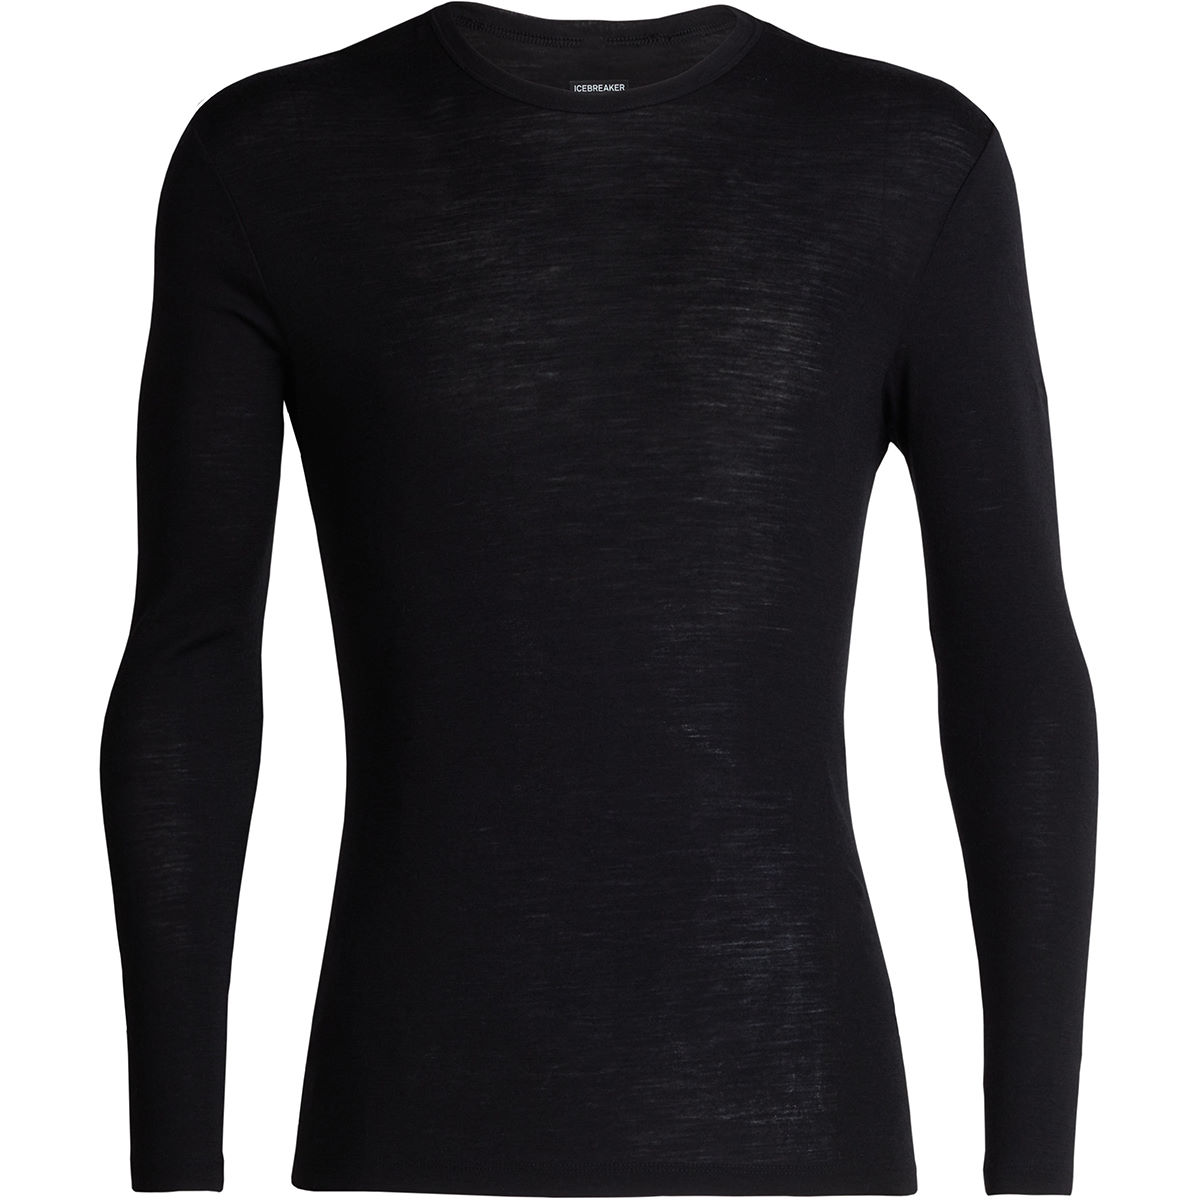 Icebreaker 175 Everyday Merino Long Sleeve Crewe - Camisetas interiores de Icebreaker